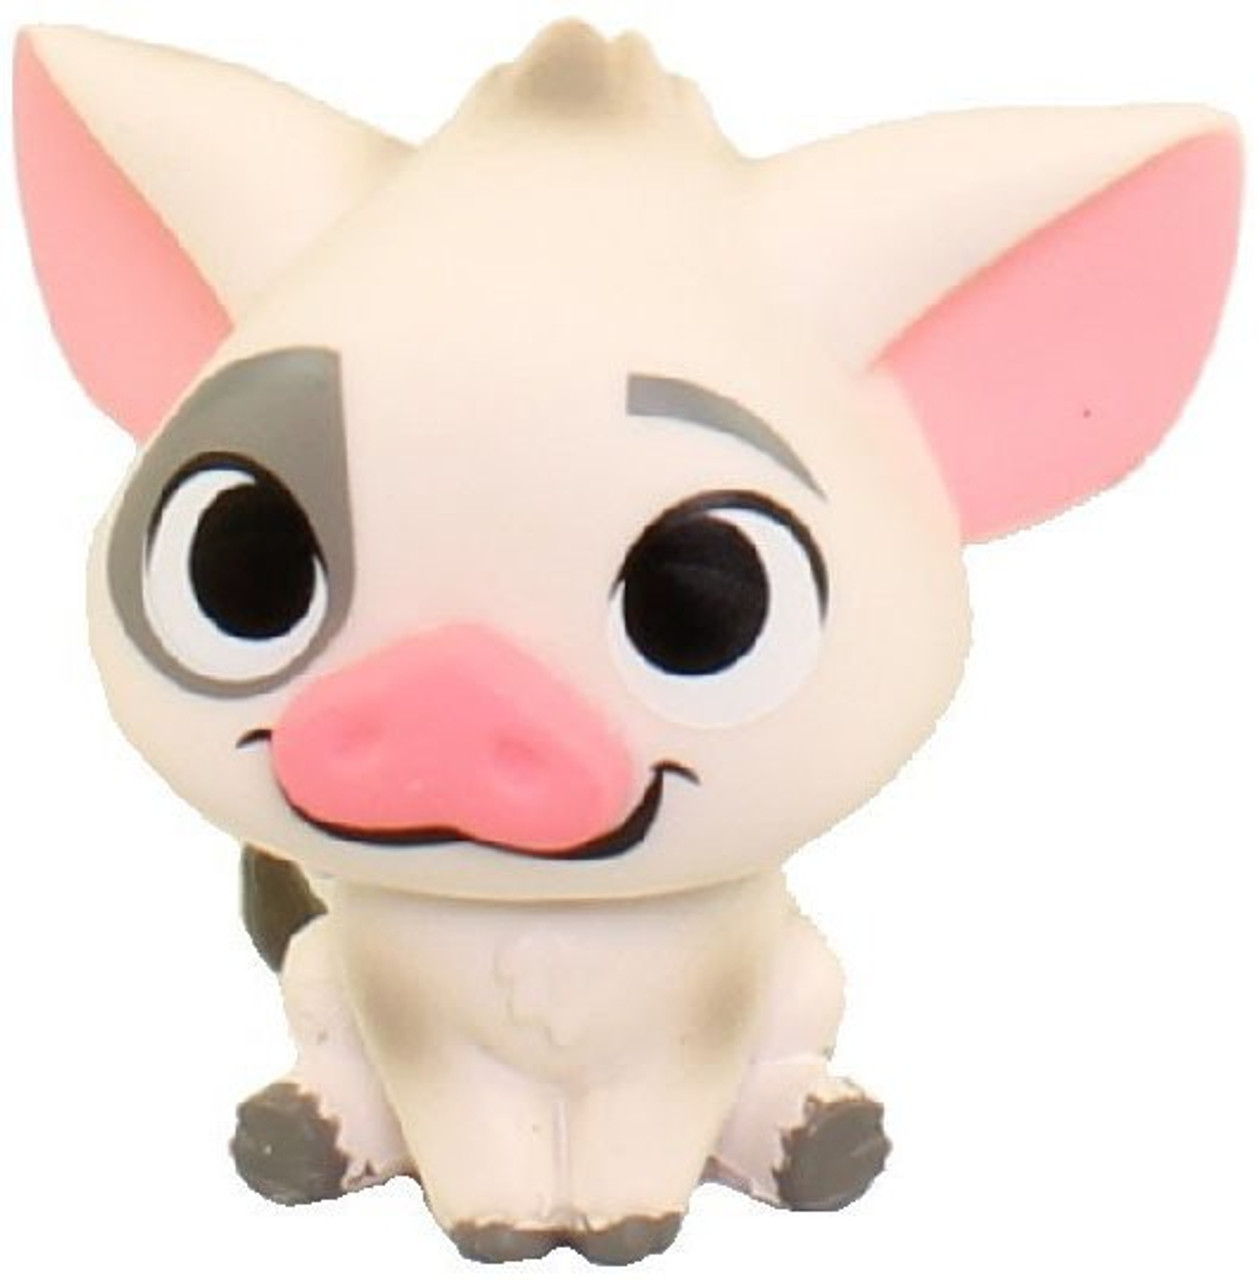 funko moana series 1 pua the pig 1 5 112 mystery minifigure sitting